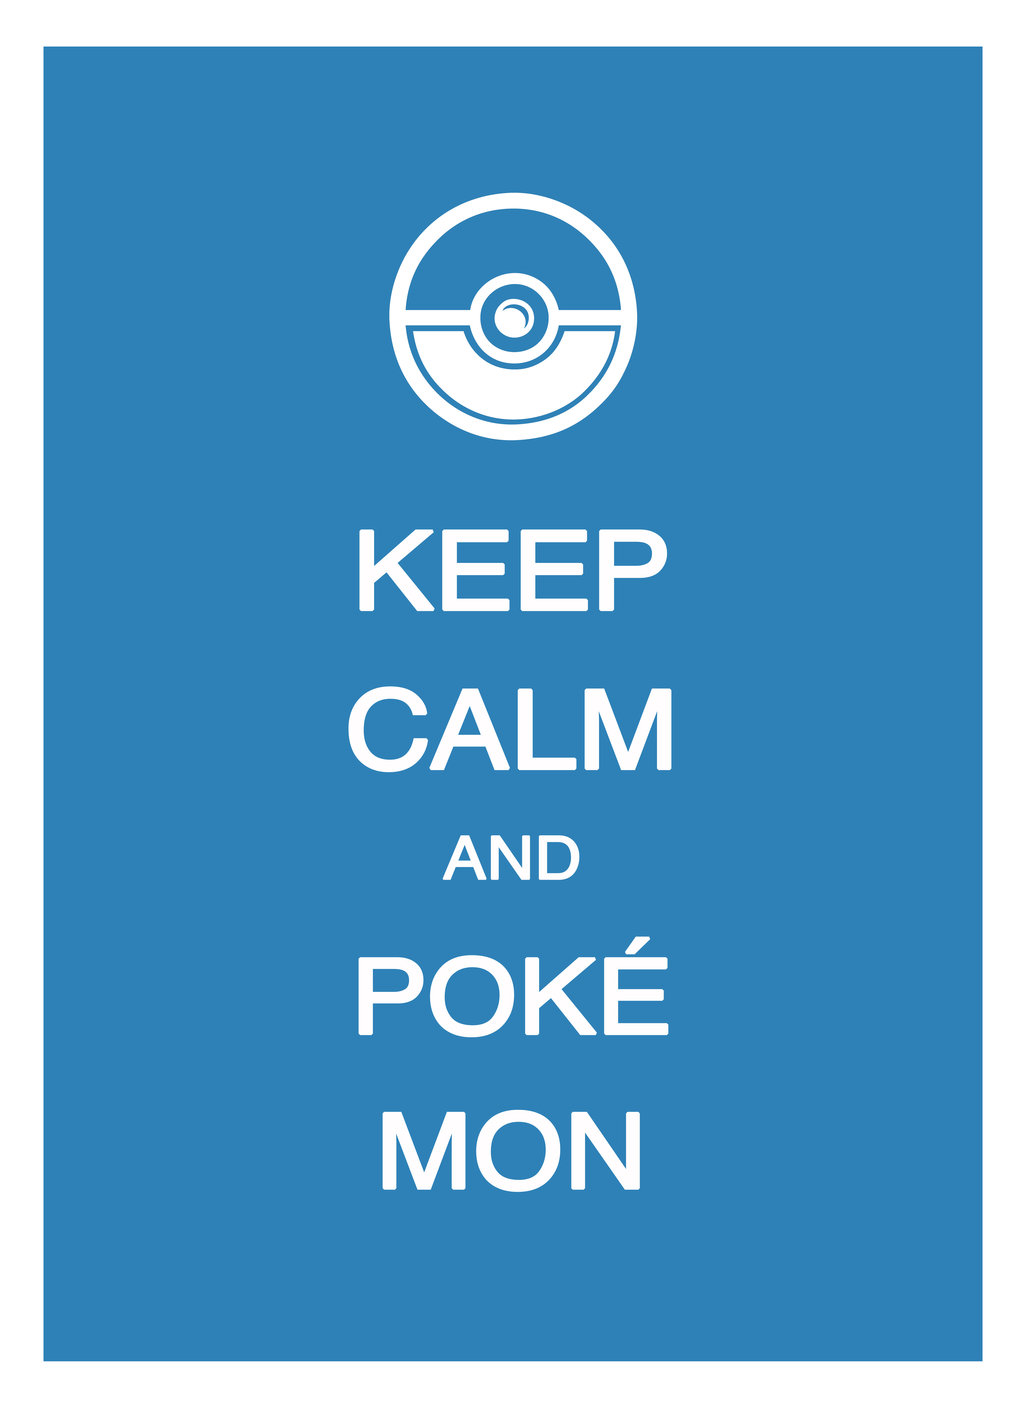 25 Creative Keep Calm and Carry On Posters | Inspirationfeed